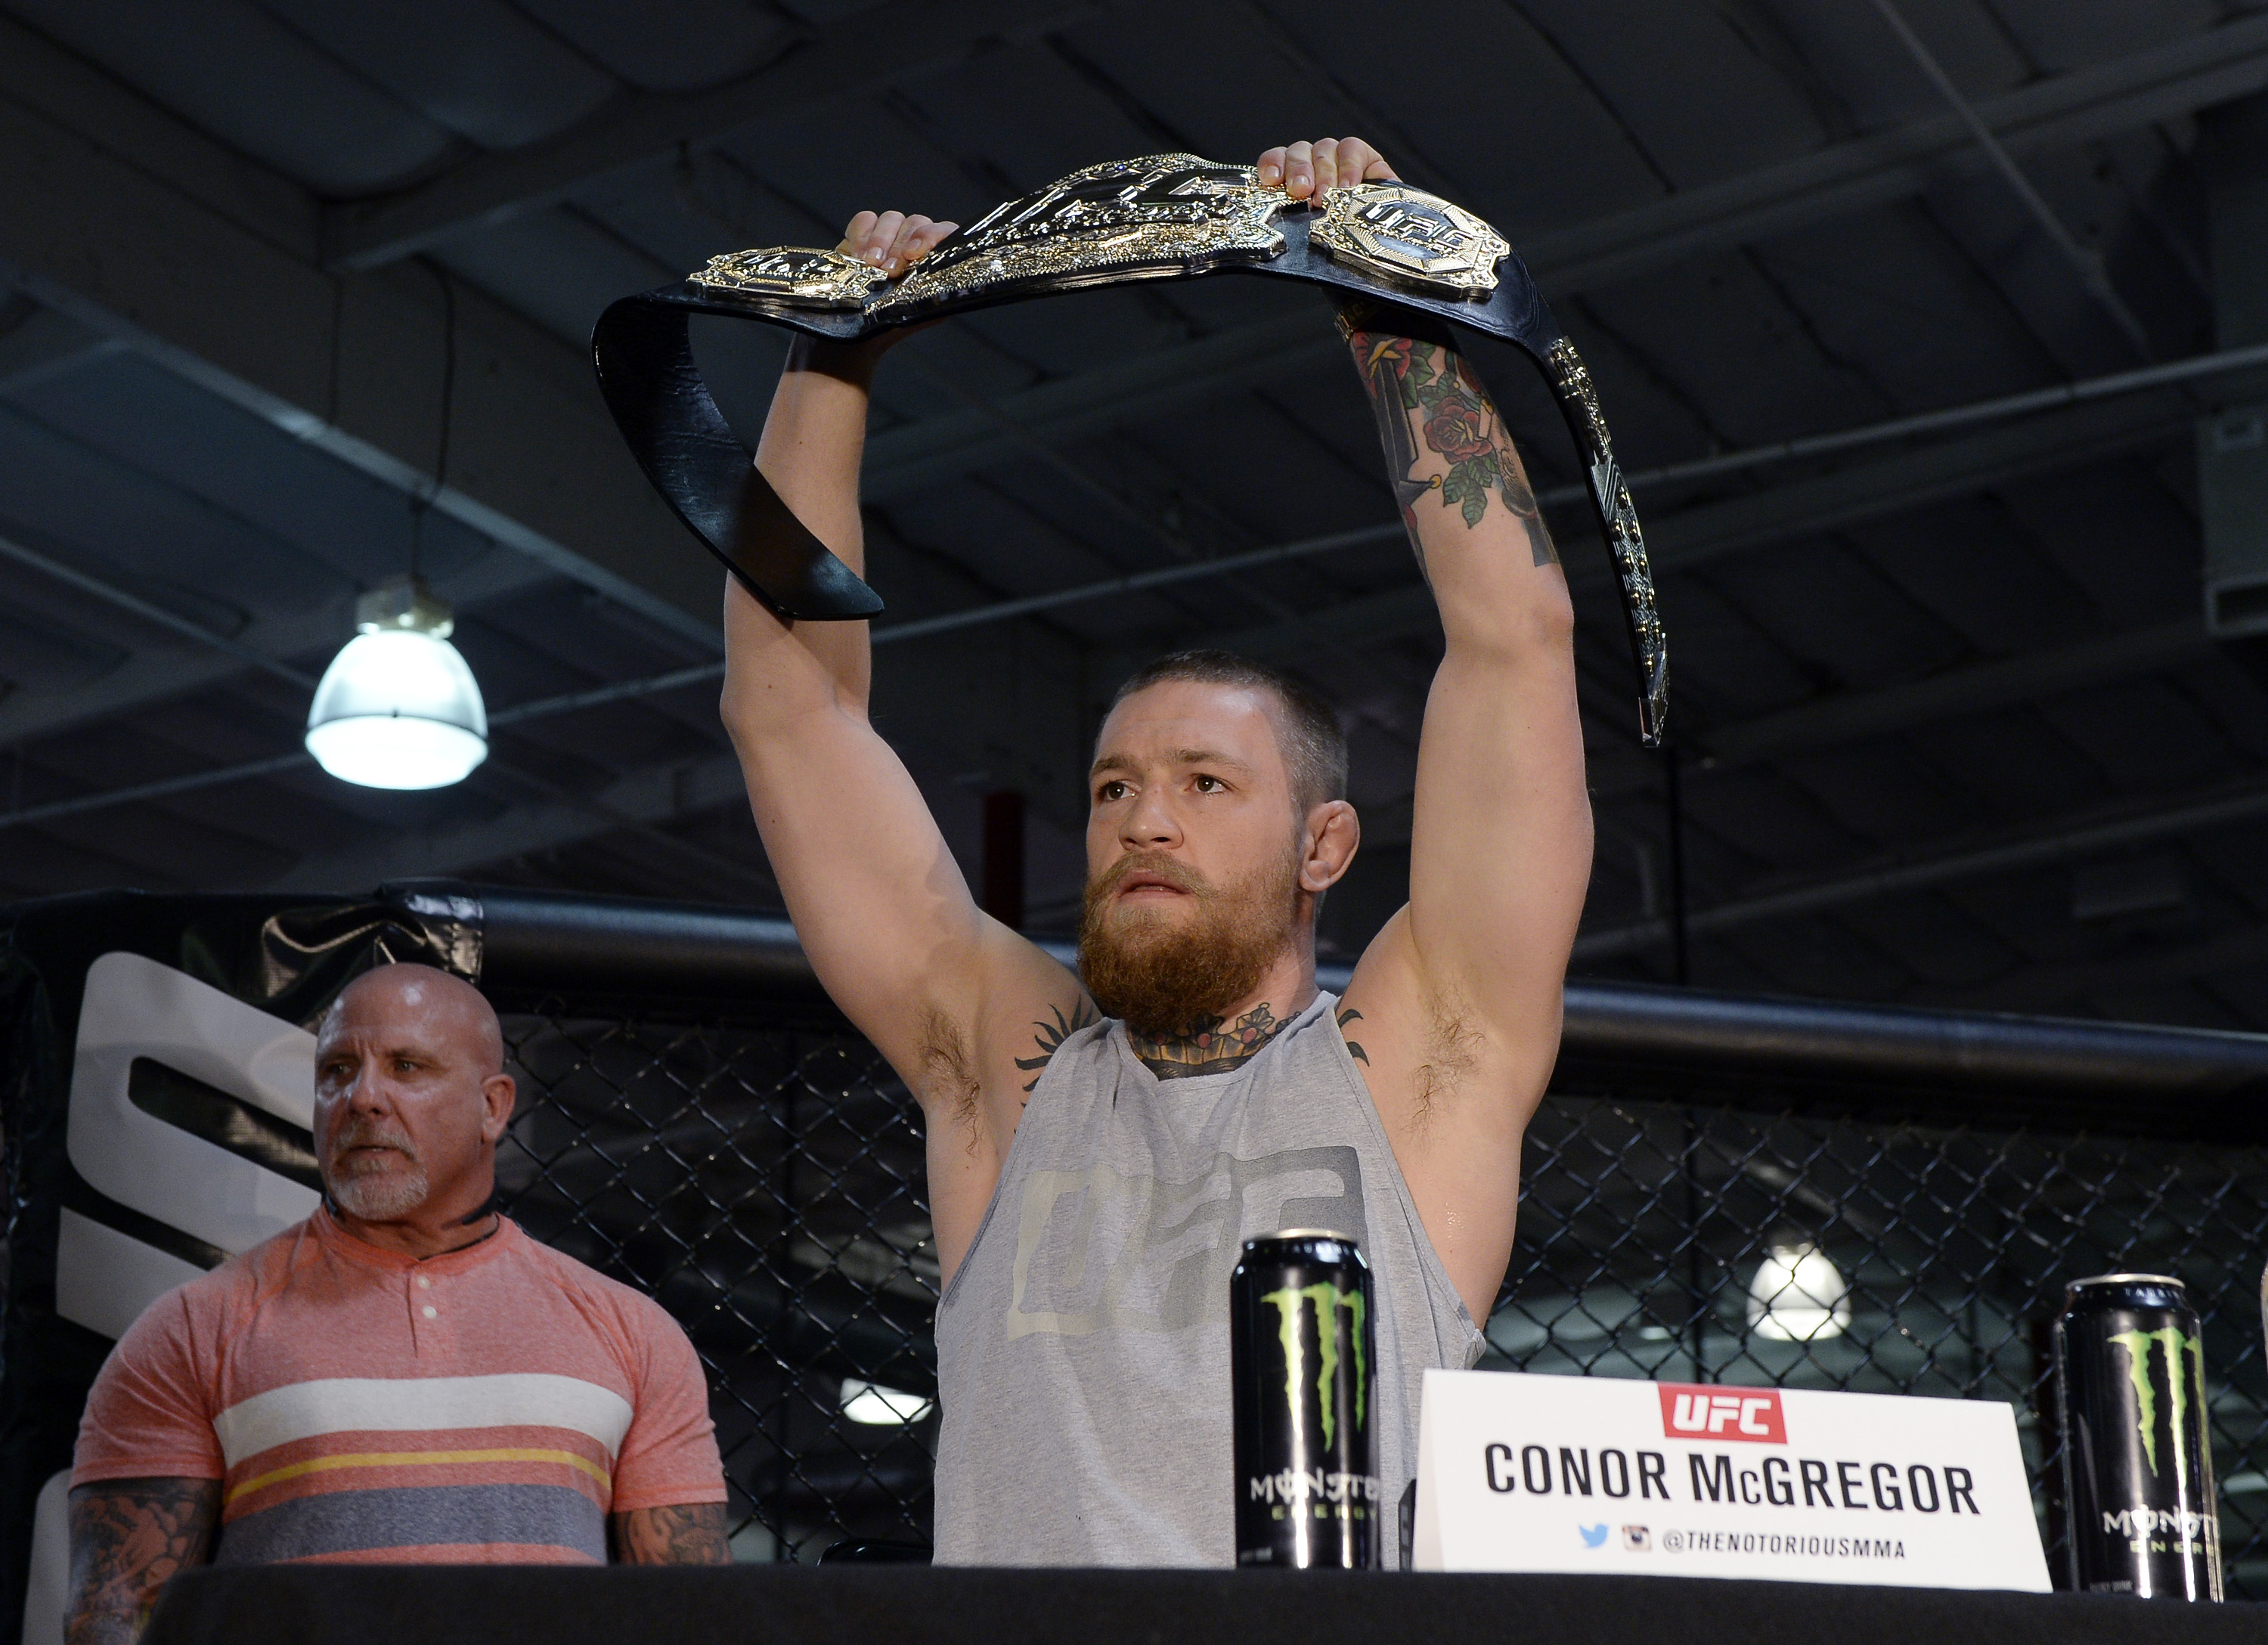 Conor Mc Gregor vs Nate Diaz title